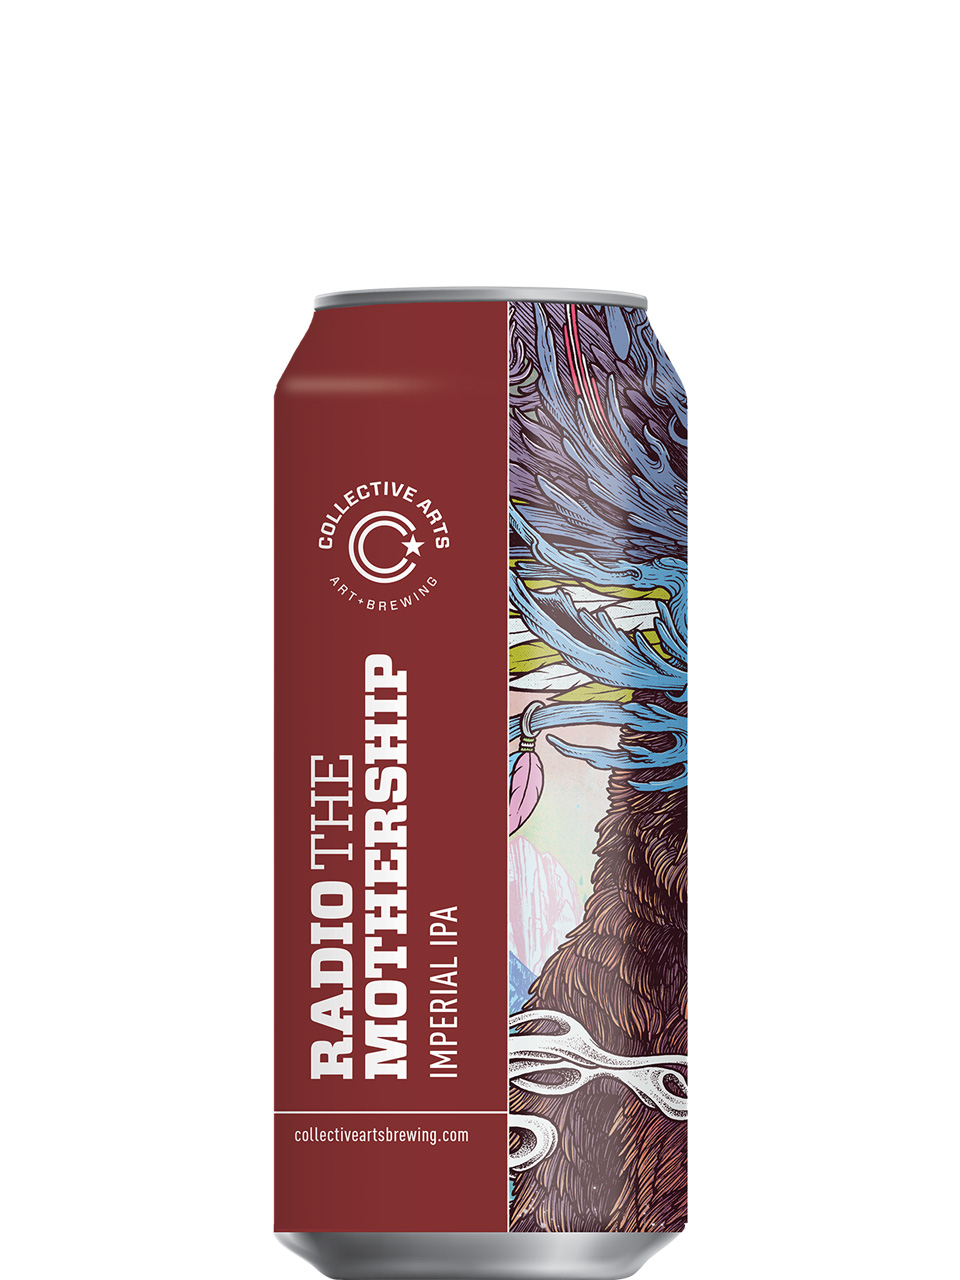 Collective Arts Radio the Mothership Imperial IPA